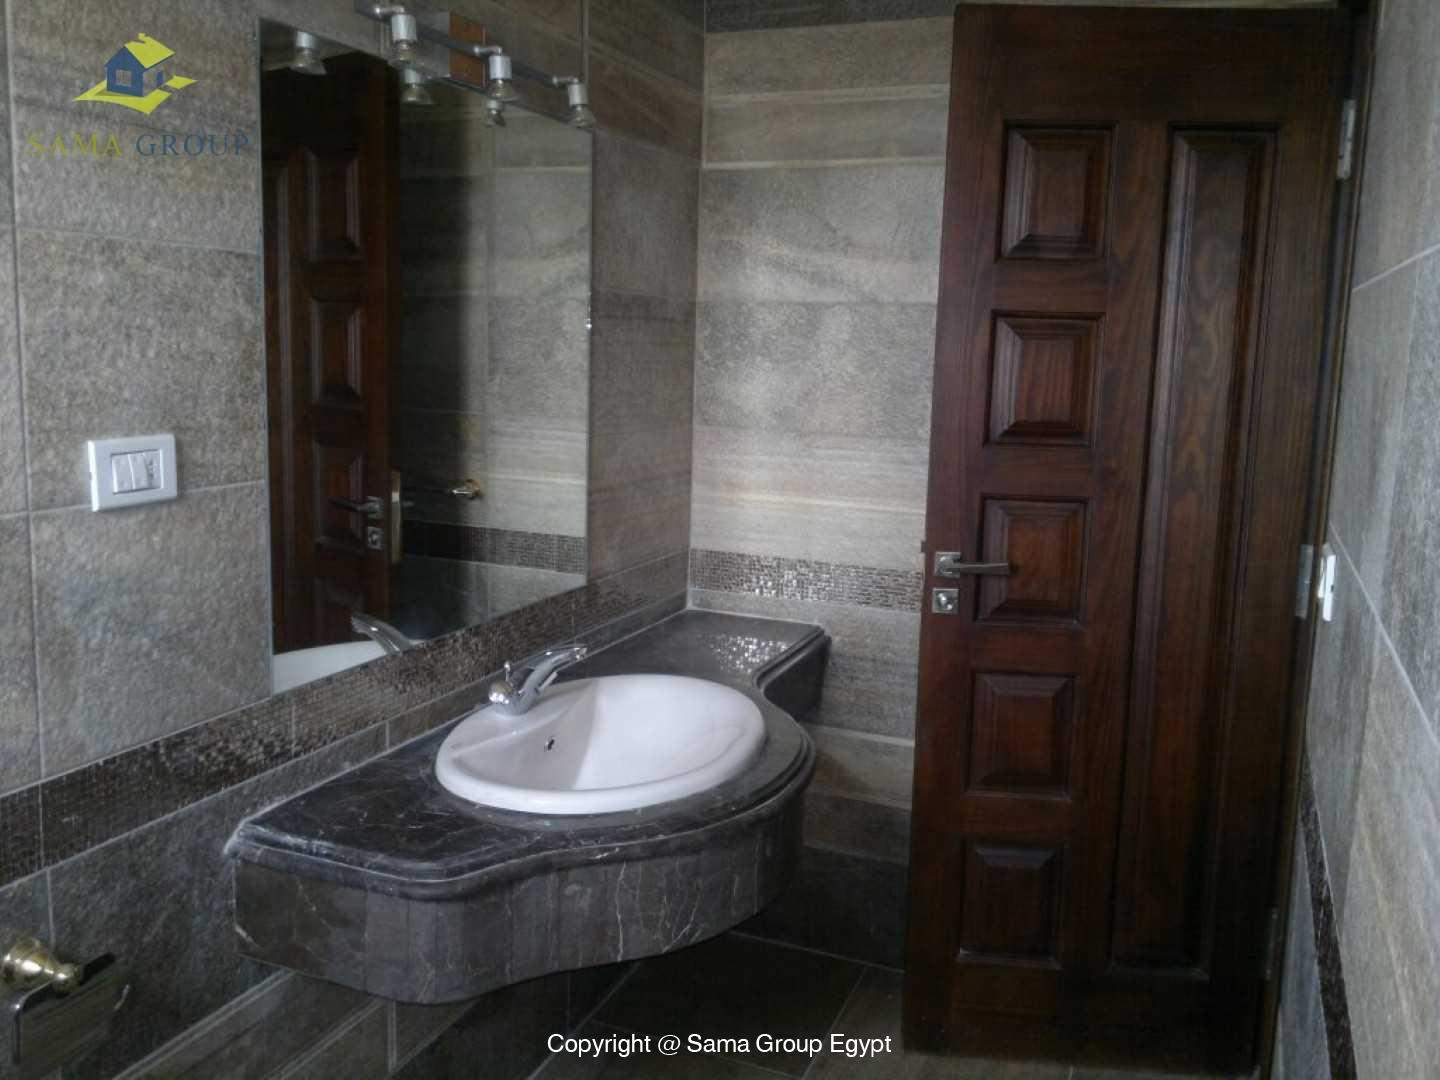 Penthouse Duplex For Rent In Maadi,Furnished,Penthouse NO #12